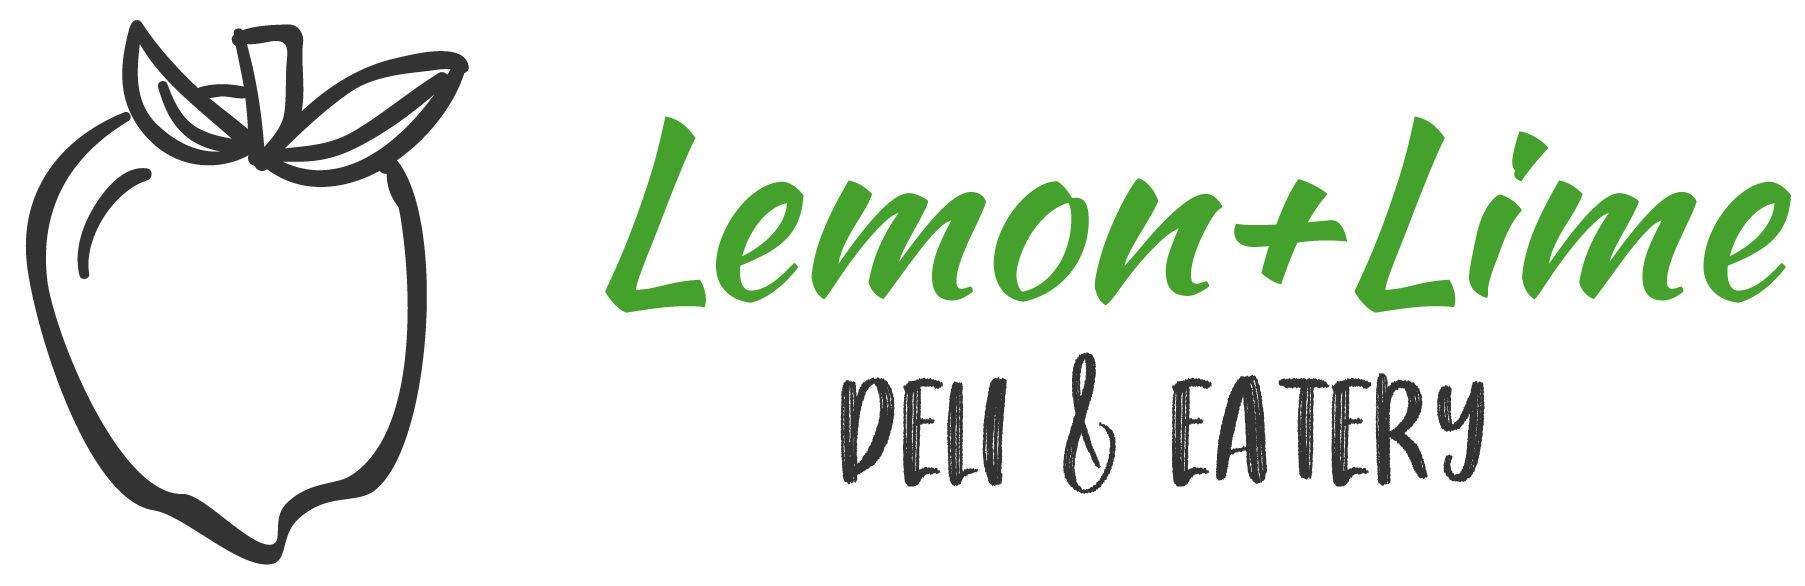 Lemon+Lime Deli